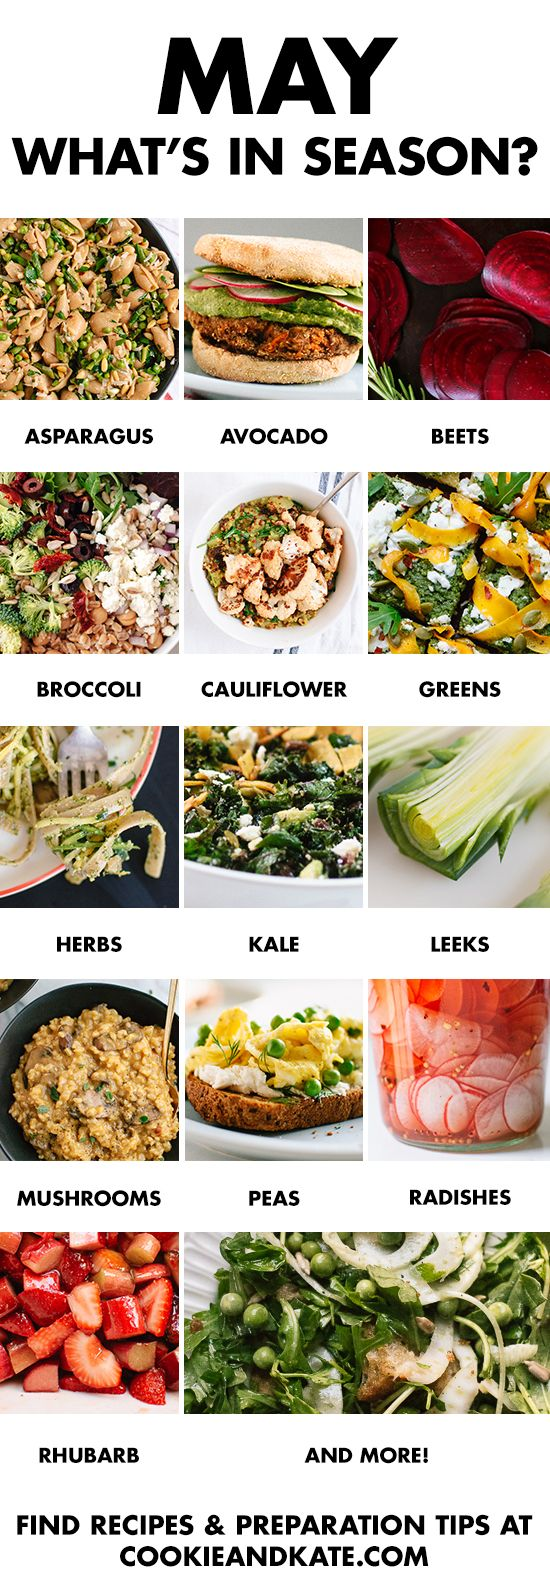 Eat seasonally with this guide to May fruits and vegetables. Find recipes and preparation tips at cookieandkate.com